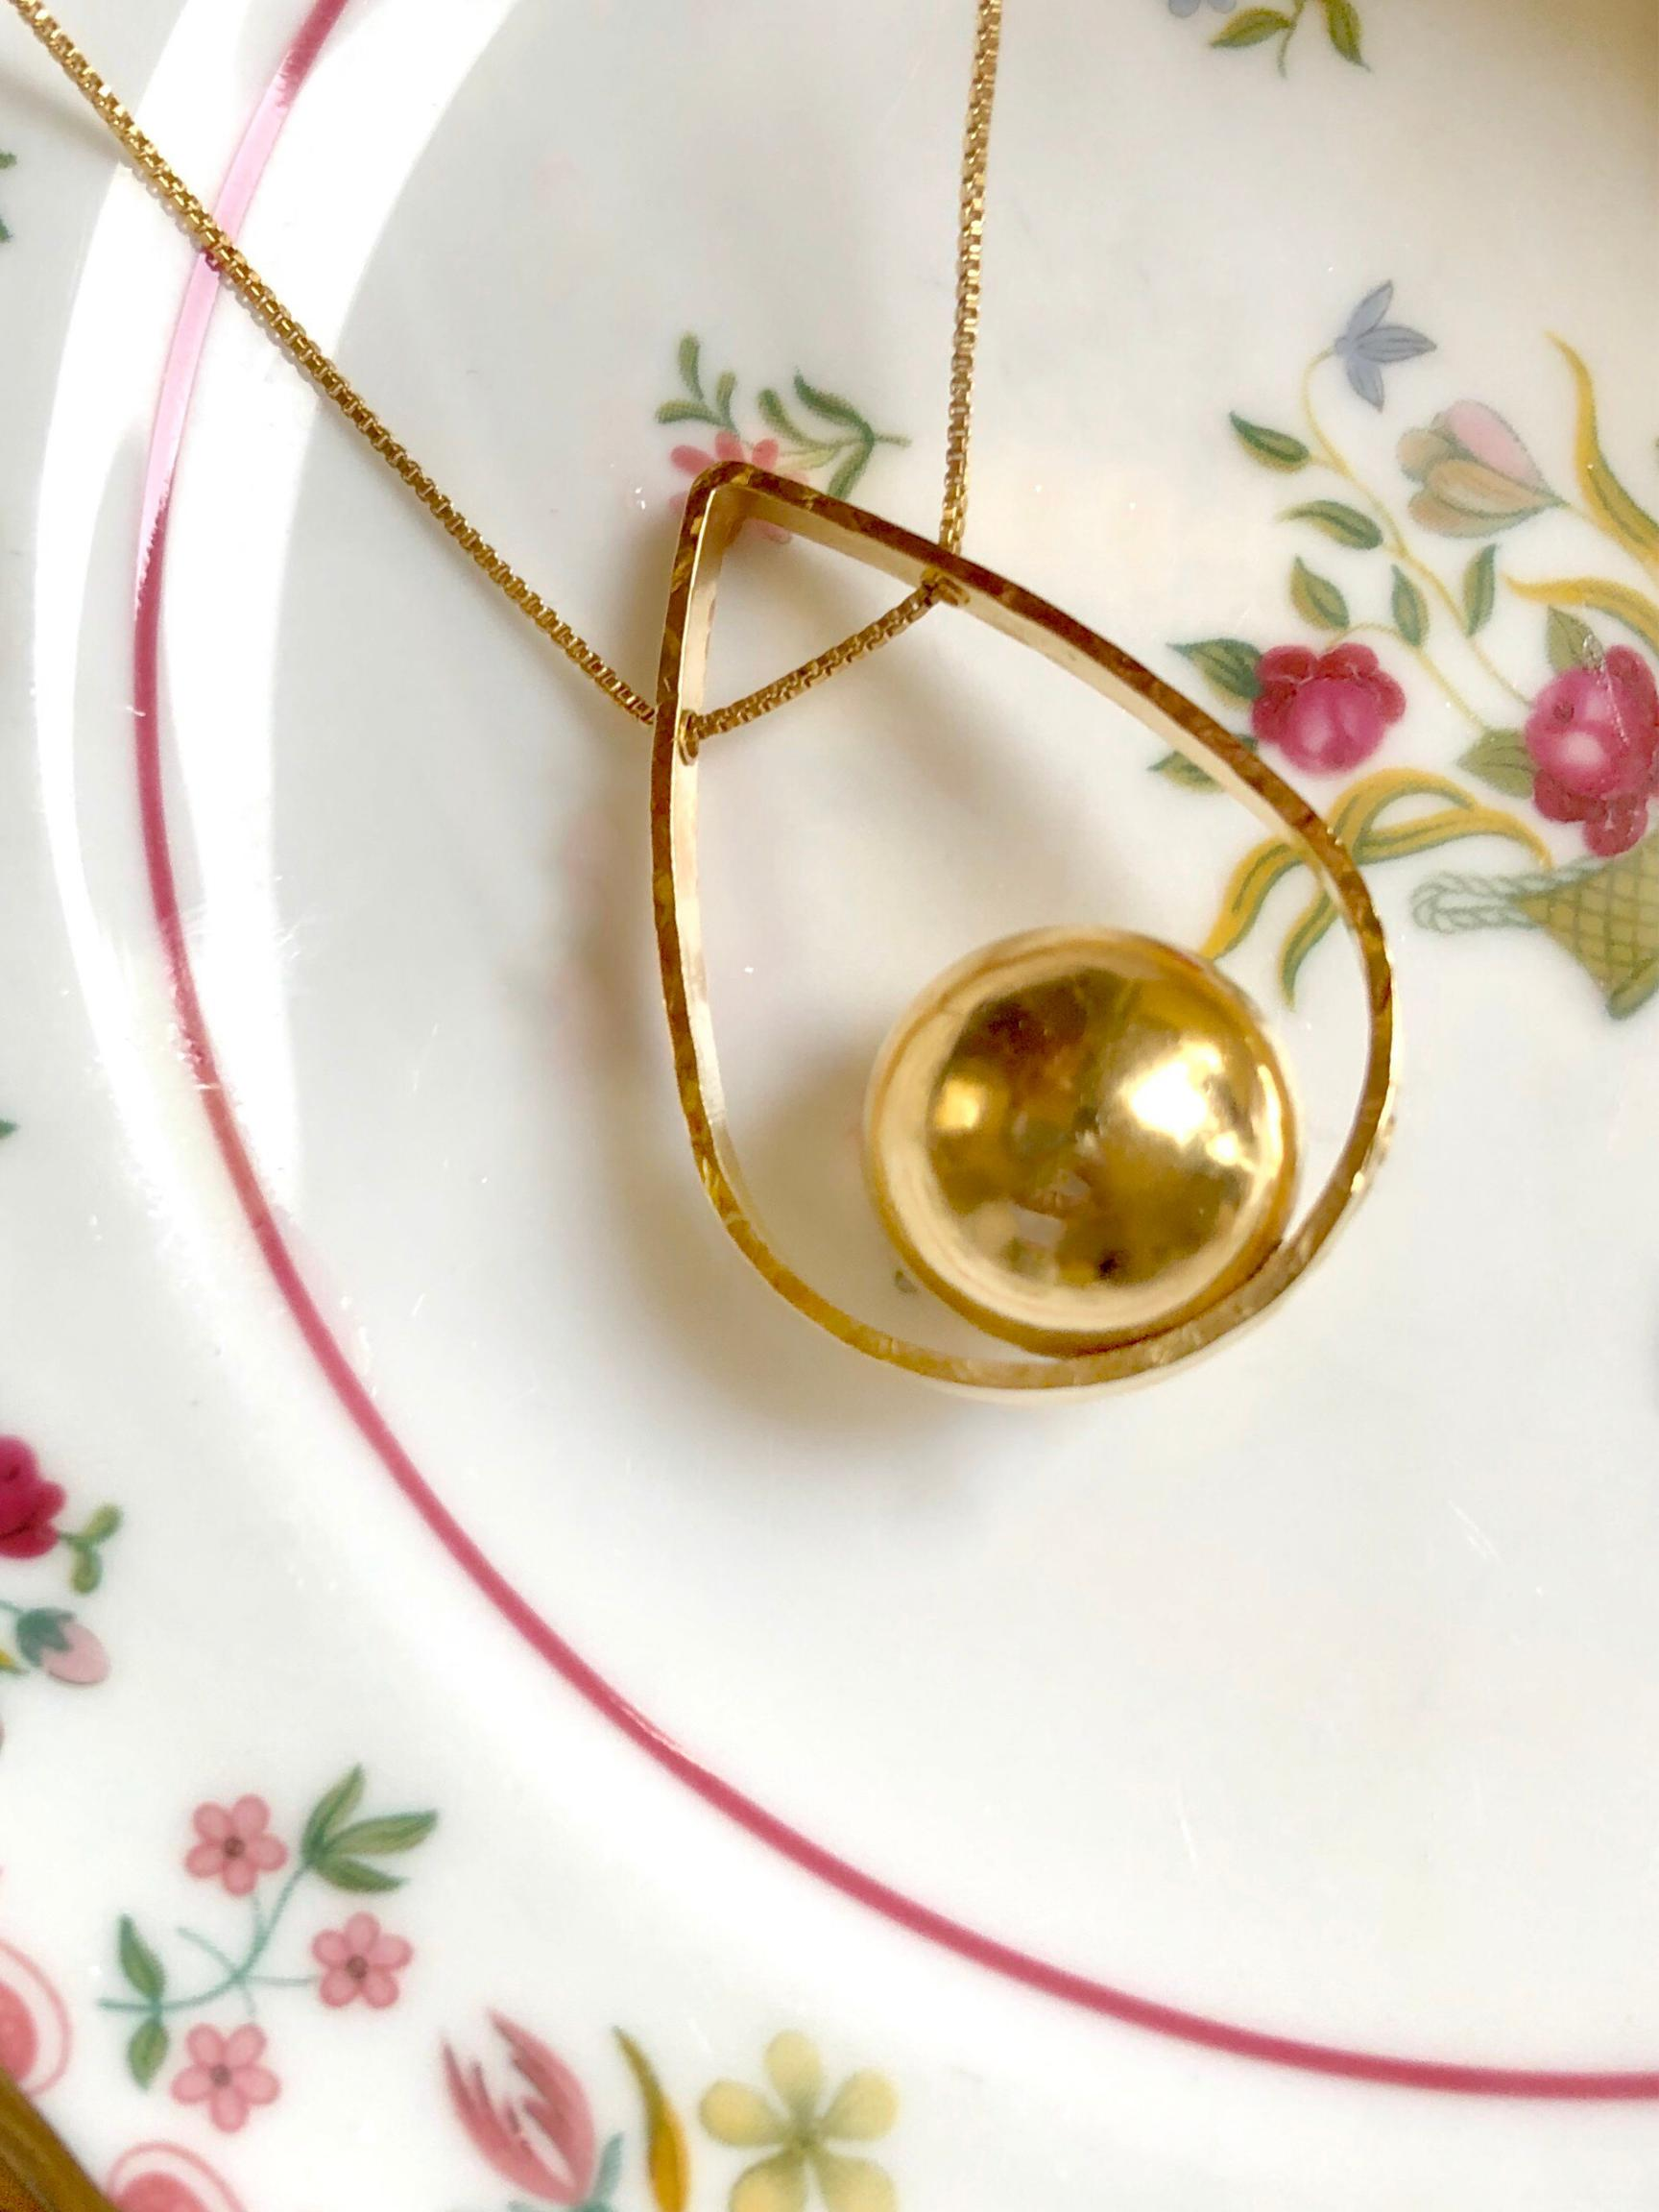 Orbita Swing Gold Pendant Necklace-Necklaces-JAREDJAMIN Jewelry Online-JARED JAMIN